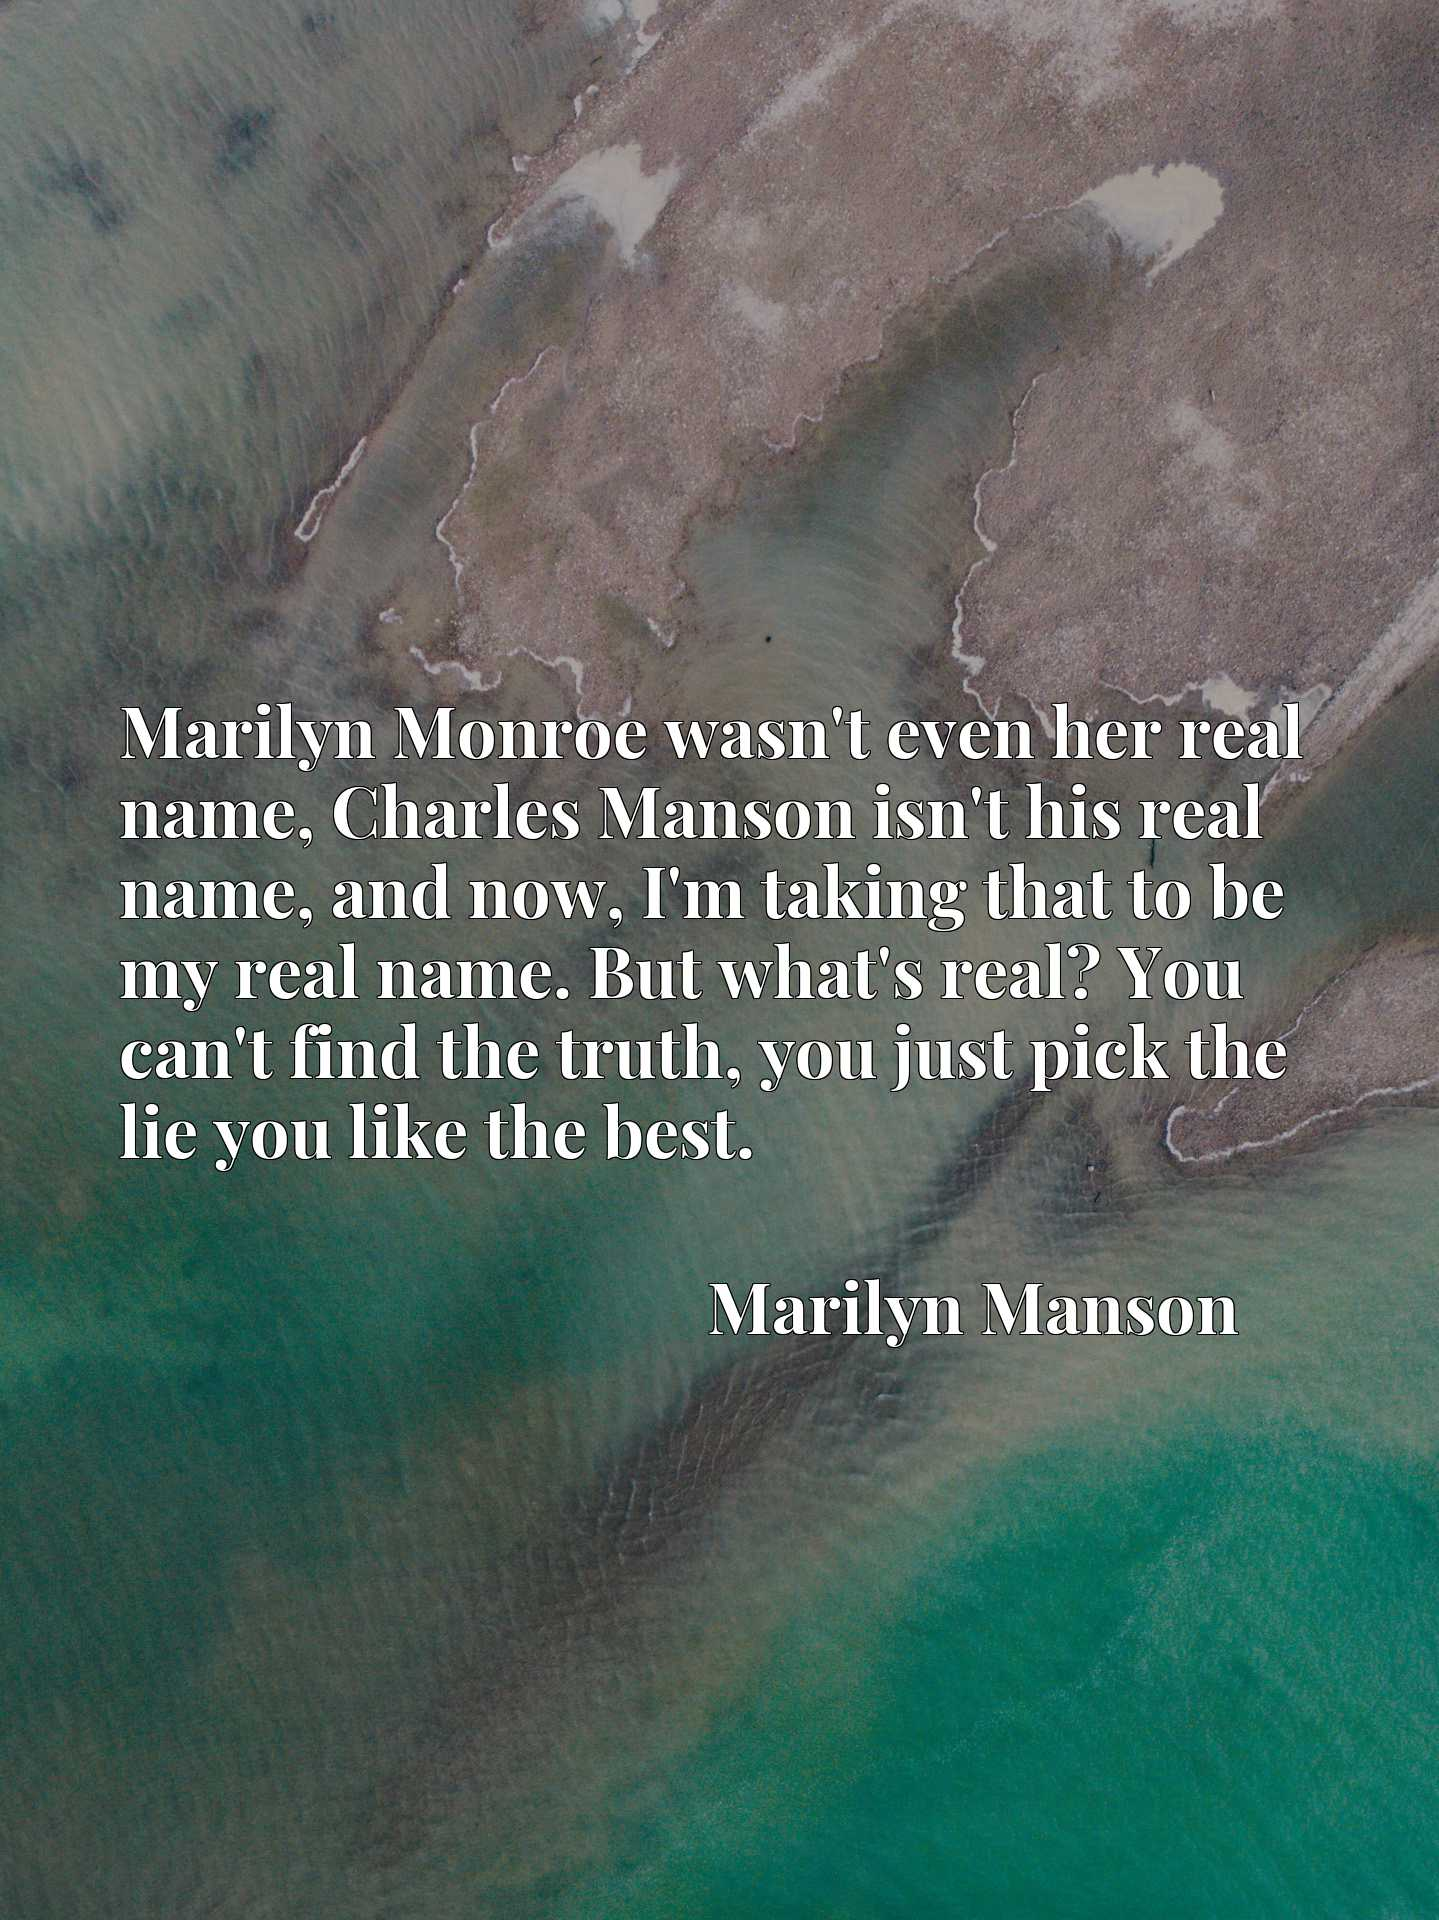 Marilyn Monroe wasn't even her real name, Charles Manson isn't his real name, and now, I'm taking that to be my real name. But what's real? You can't find the truth, you just pick the lie you like the best.